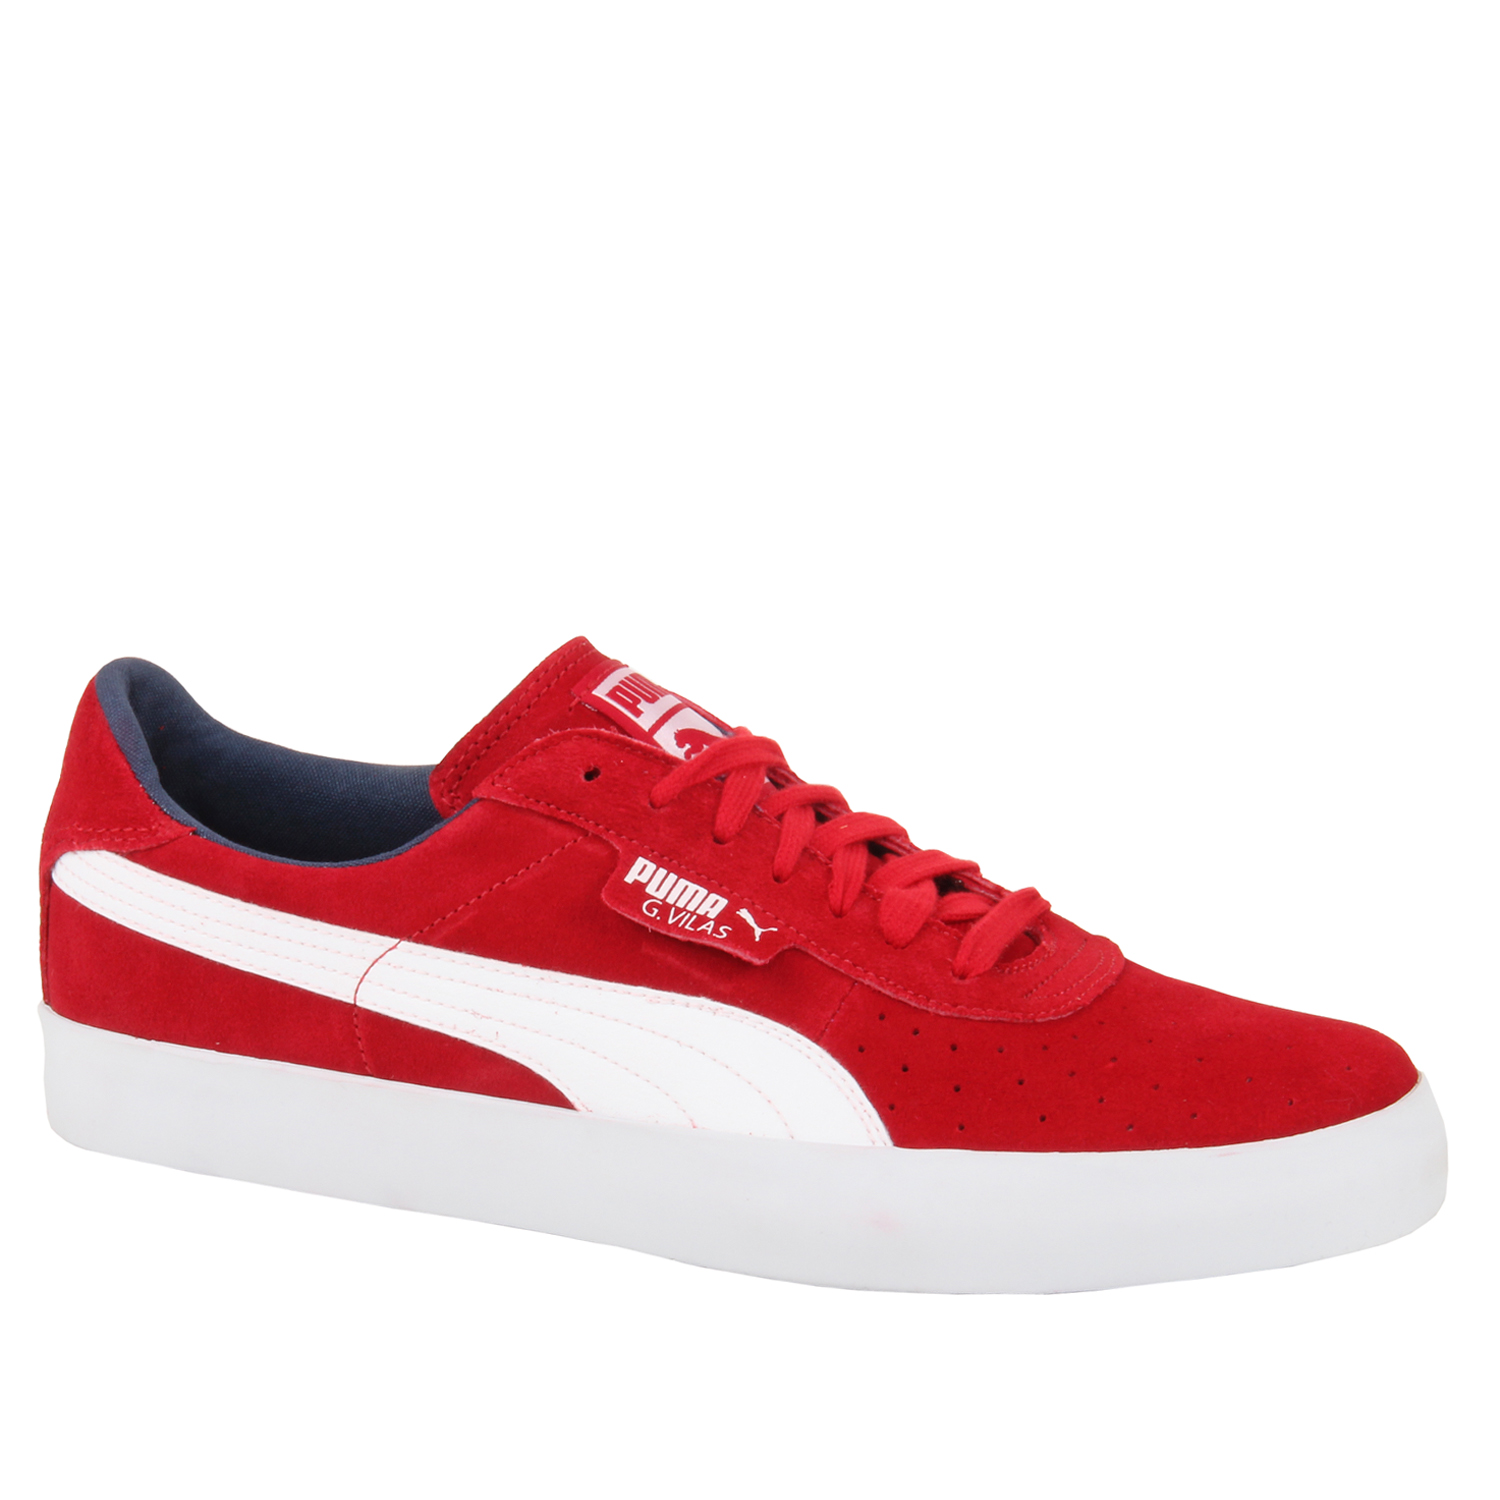 Mens-Puma-Retro-G-Villas-Classic-Suede-Leather-Trainers-Sports-Shoes-Size-VH-JD